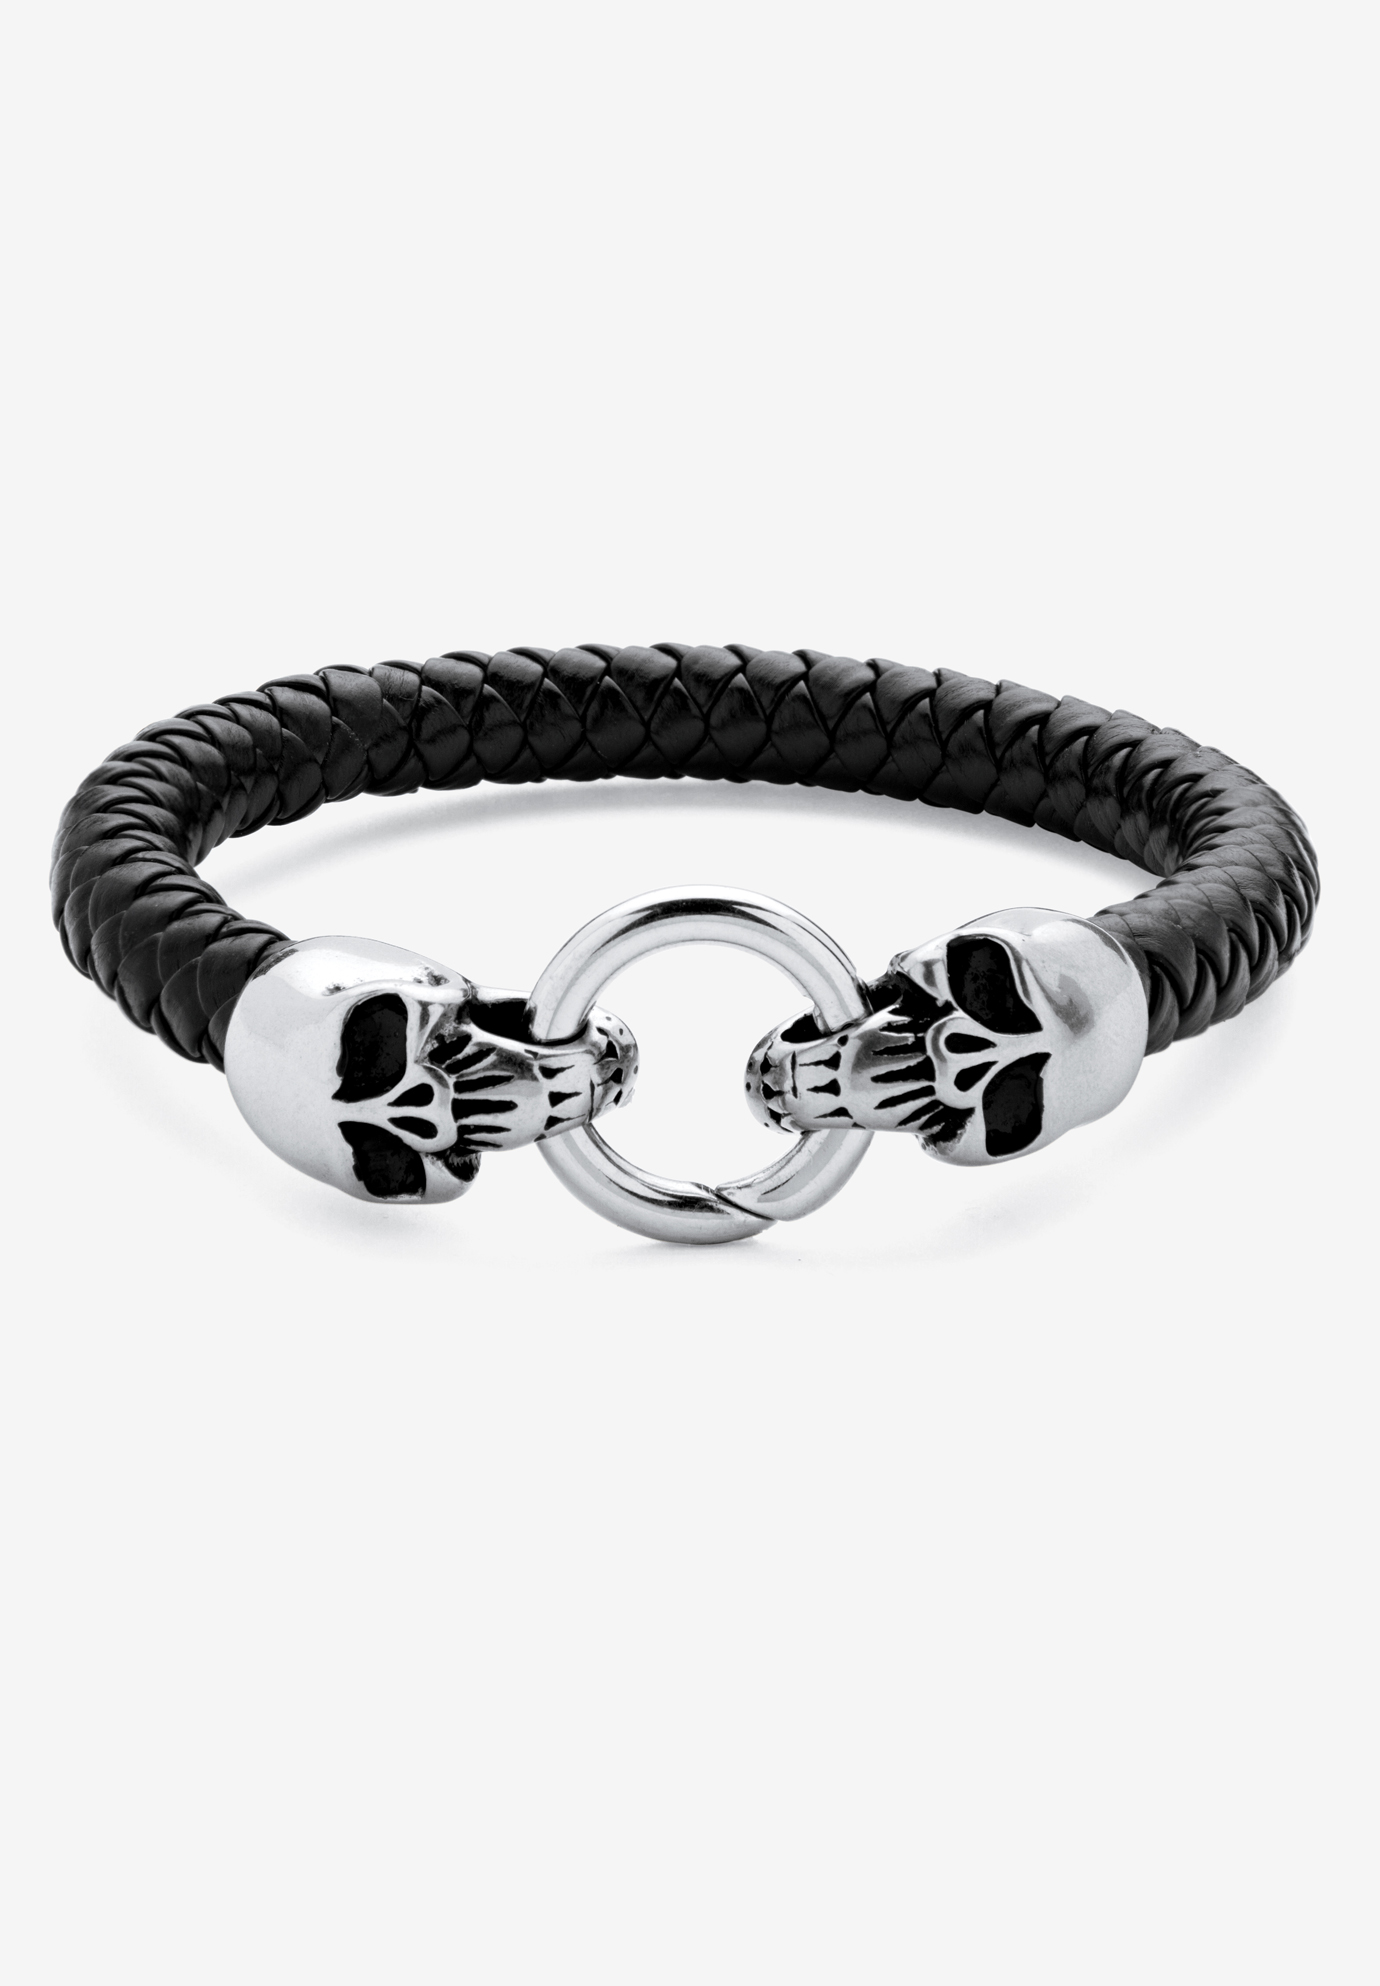 "Stainless Steel Double Skull Bangle Bracelet 9"", STAINLESS STEEL"